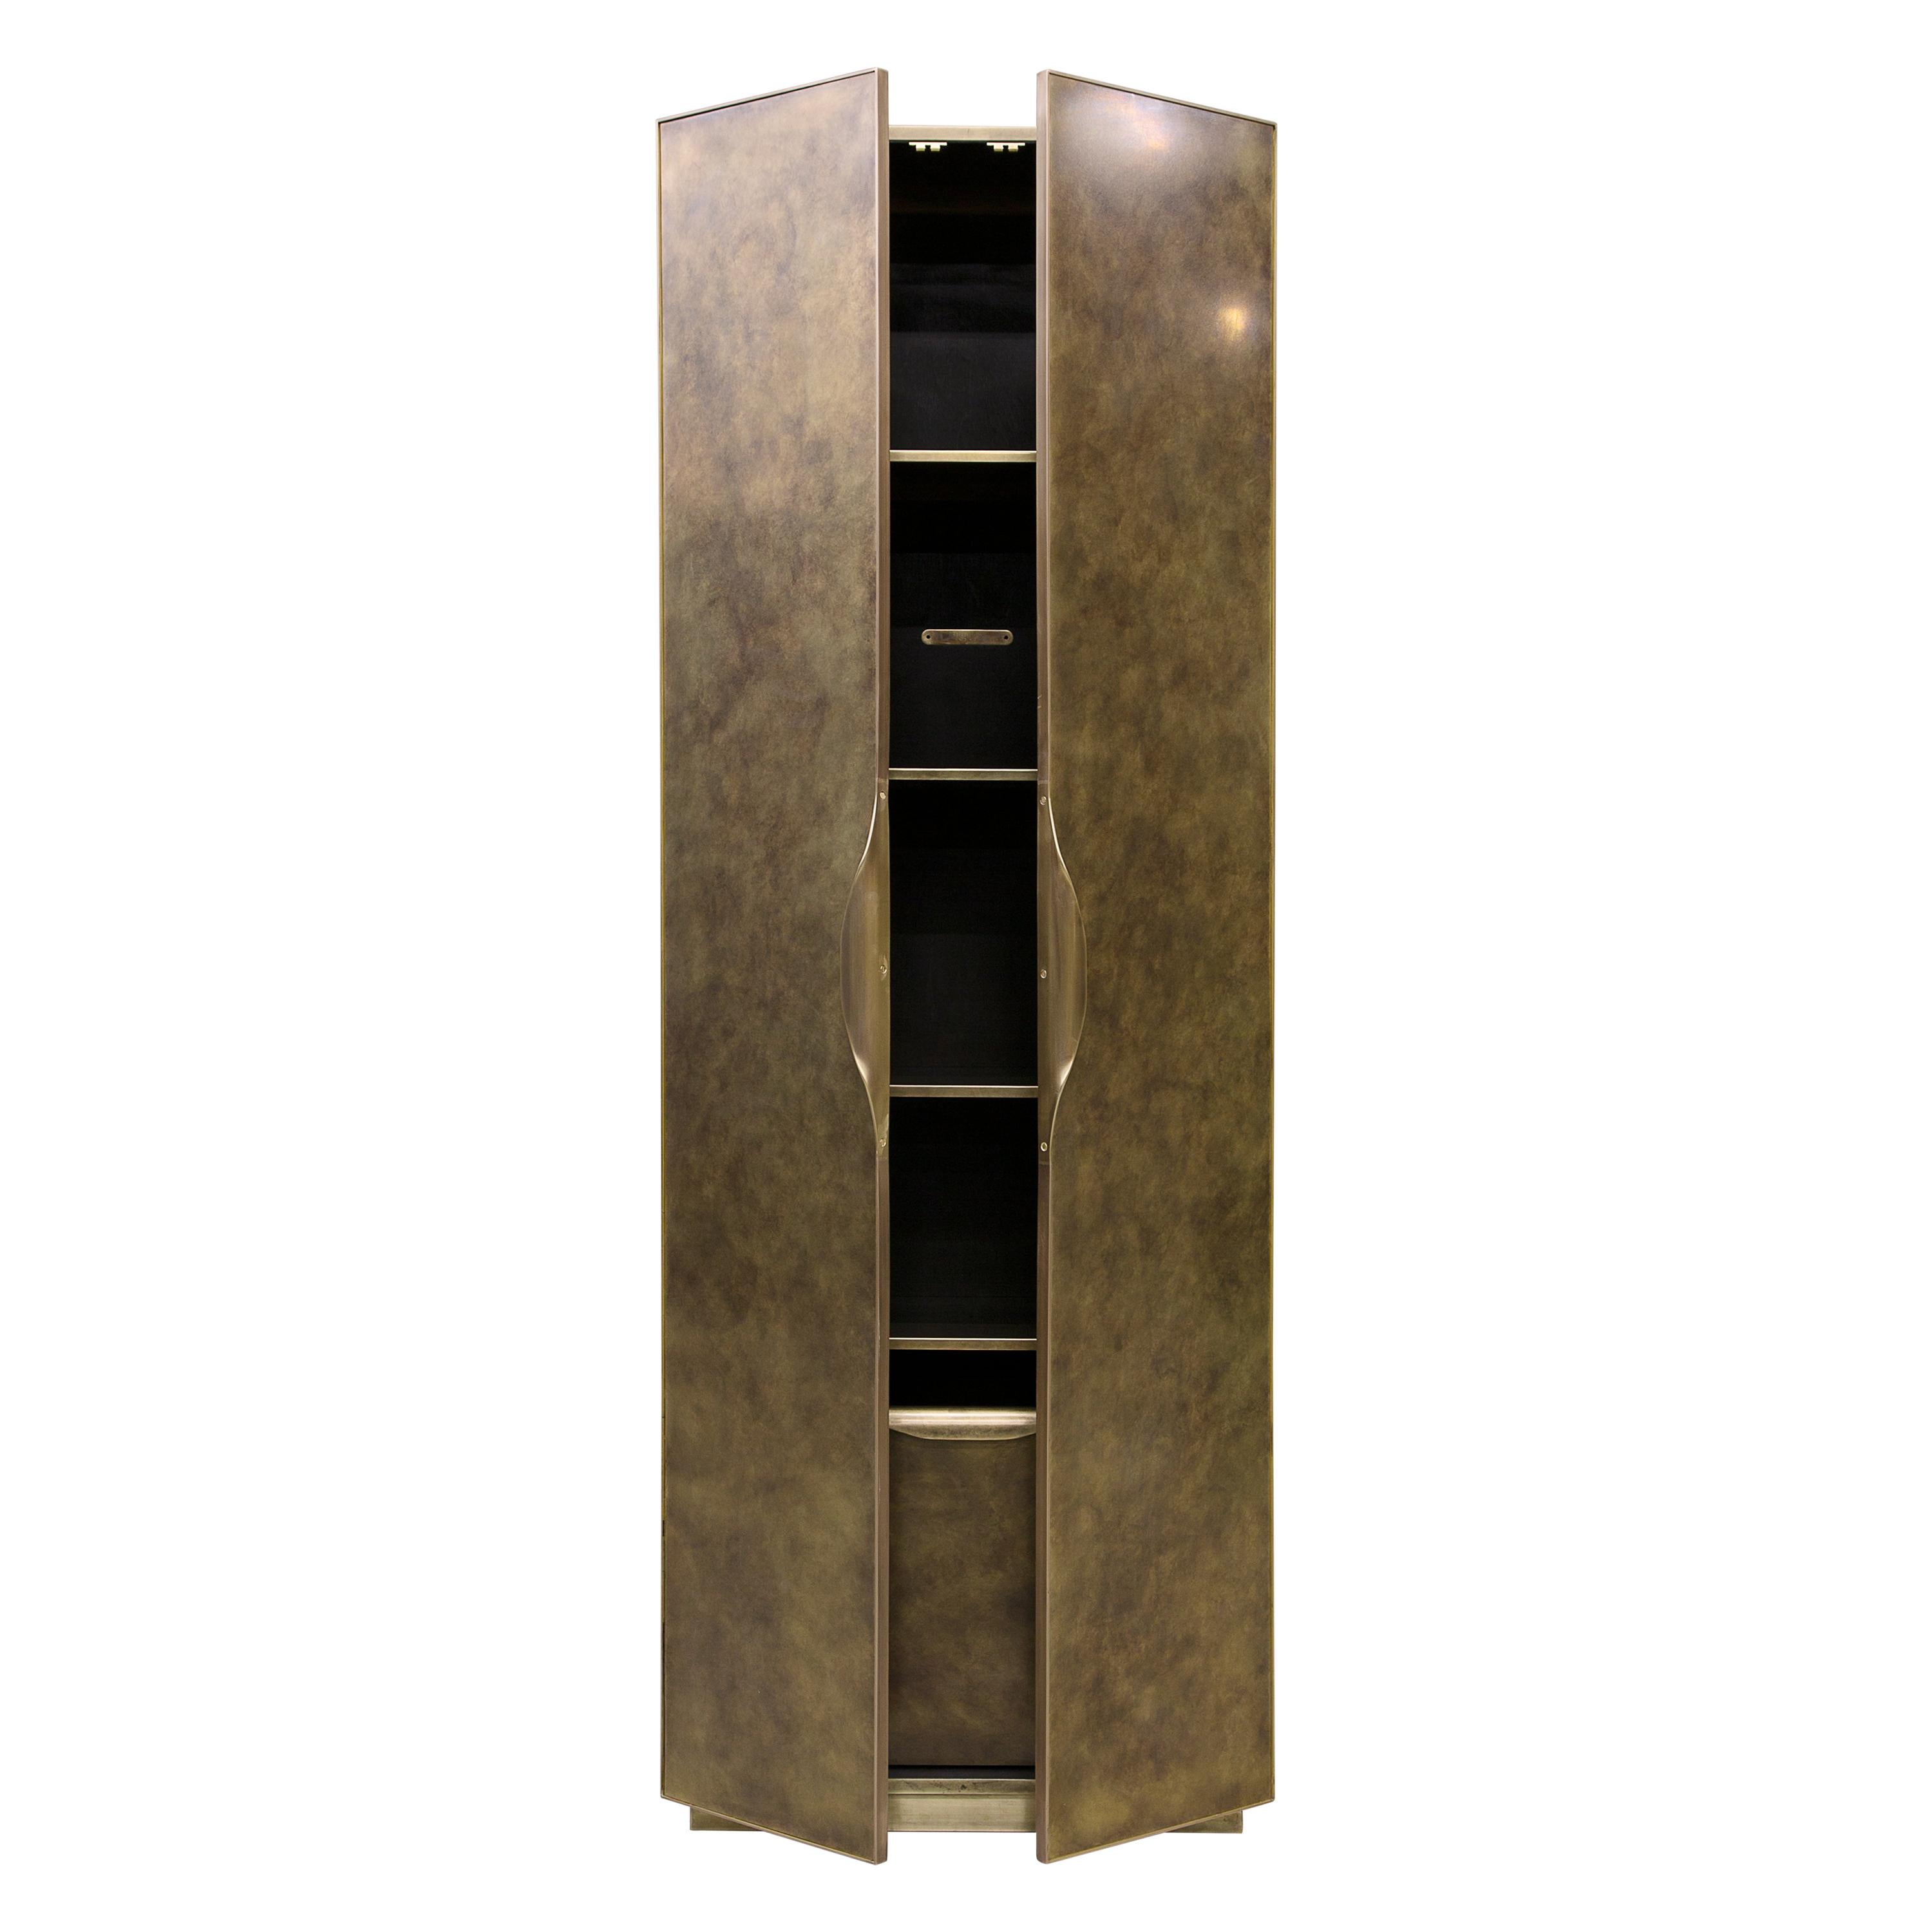 Brass Cabinet Handcrafted and Signed by Novocastrian